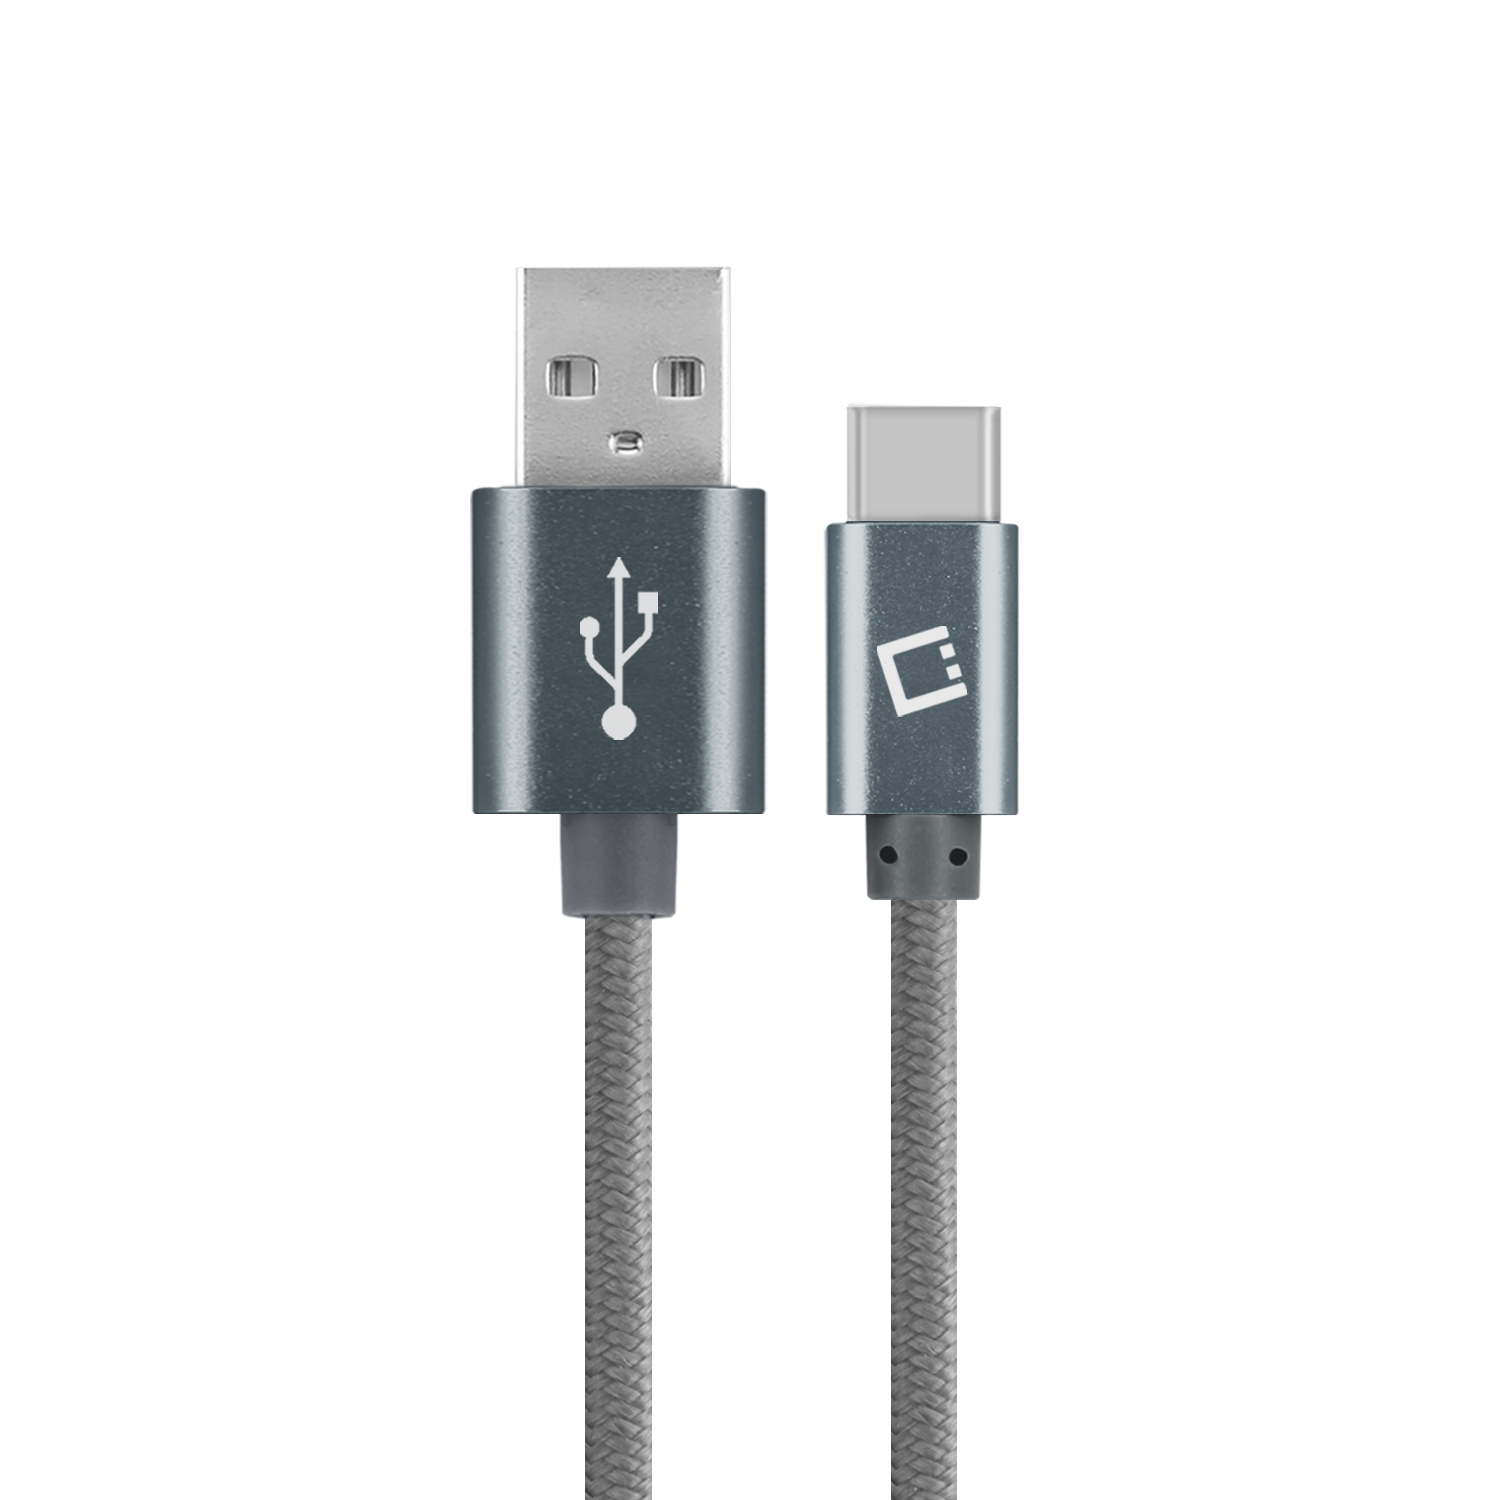 Sony Xperia X Compact USB Type-C To Type-A Braided Data Power Cable Grey 4ft Braided